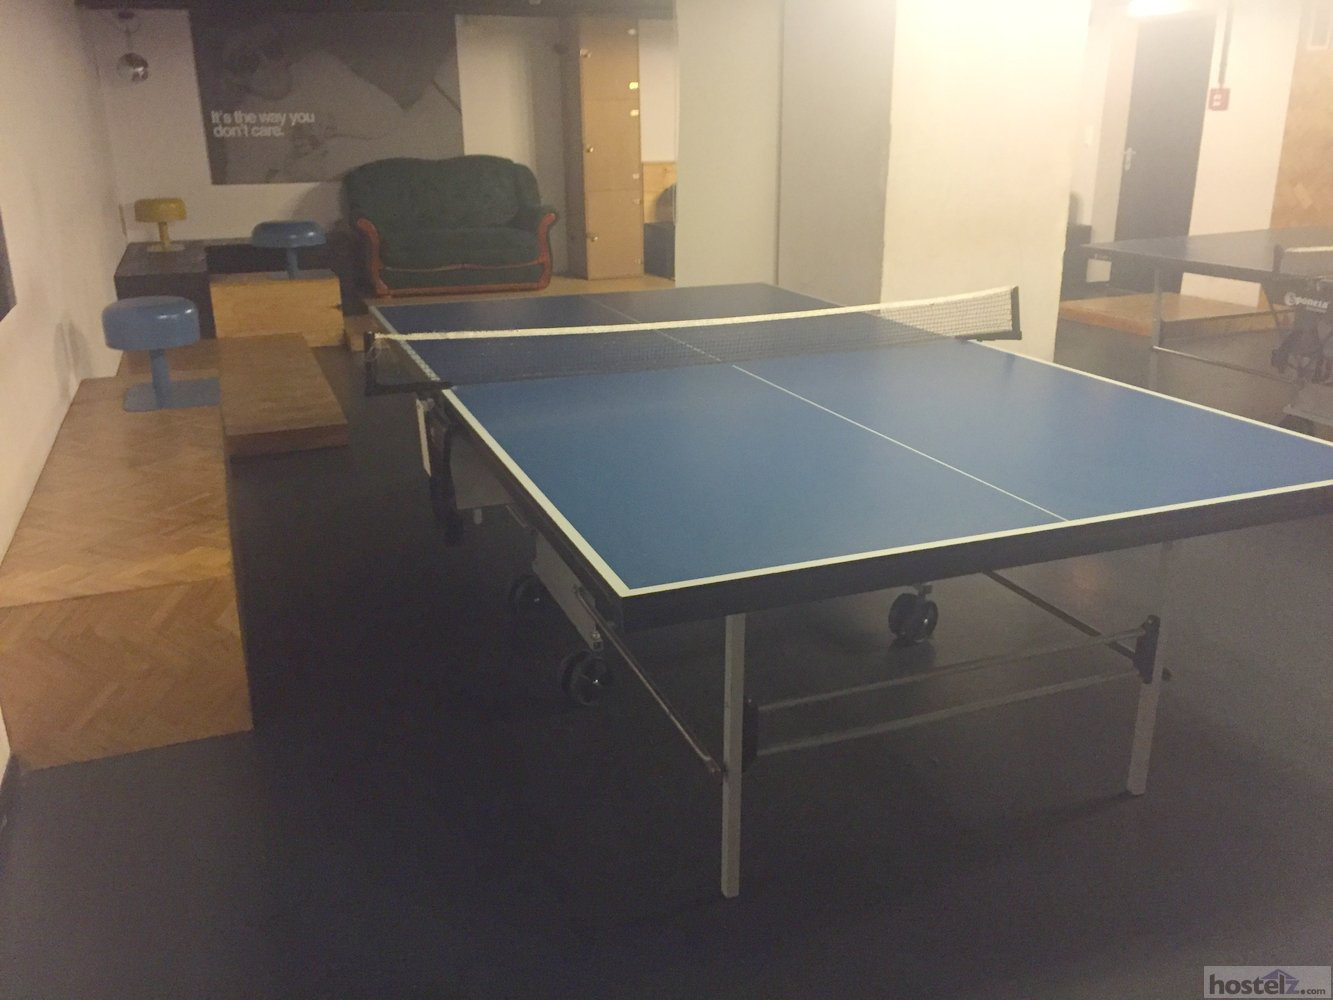 A ping pong table in the recreaction area